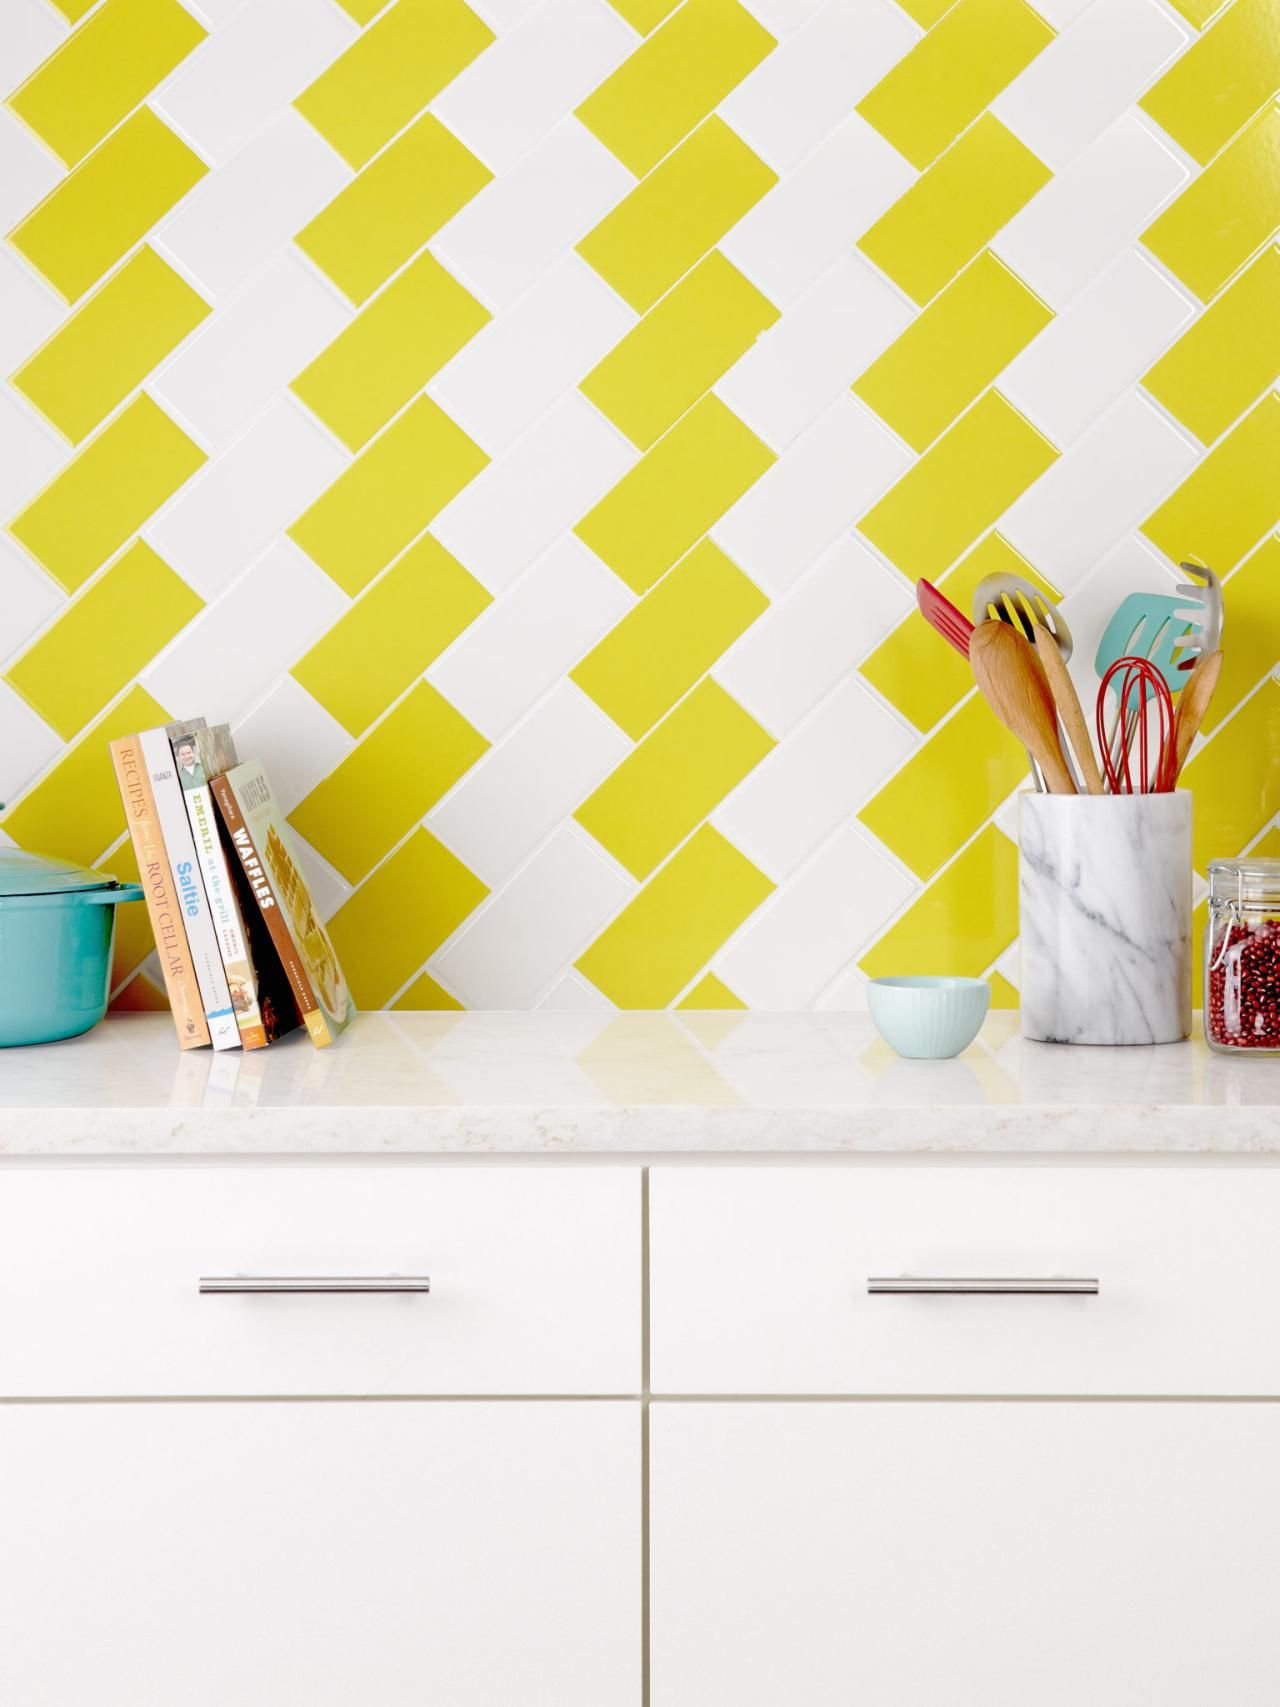 5 Clever Tile Backsplash Designs from HGTV Stars | Pinterest ...